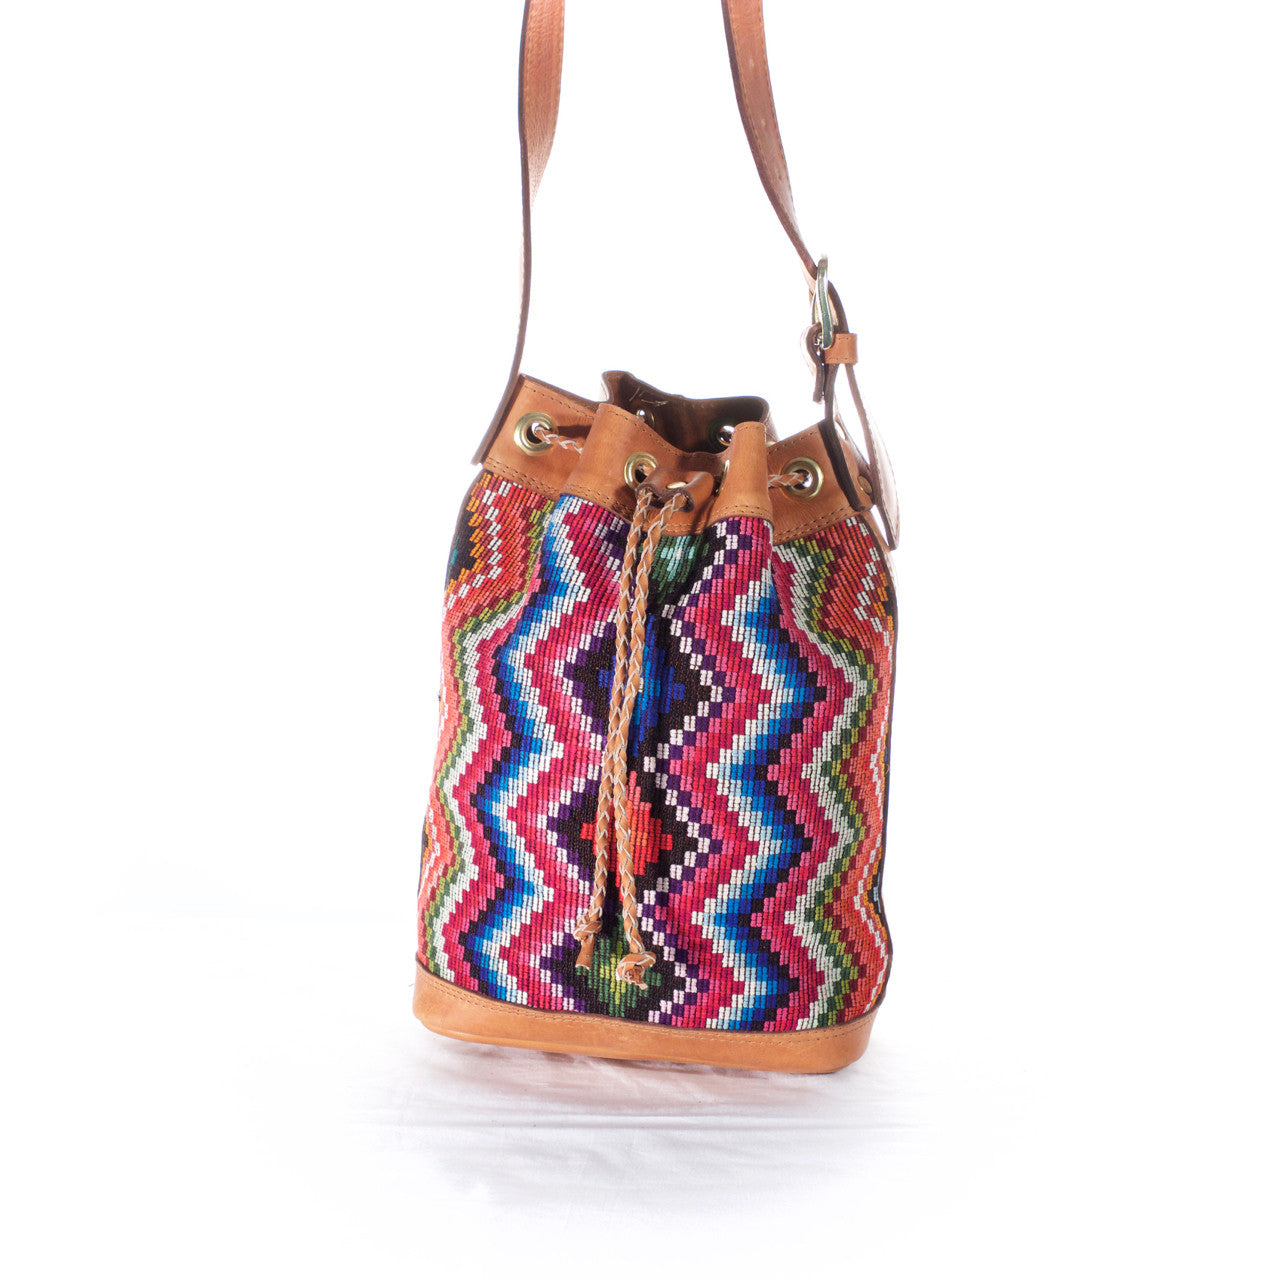 Zorro Bucket Bag  Shoulder Bag Multi Zigzag - Cielo Collective handmade Mexico Guatemala